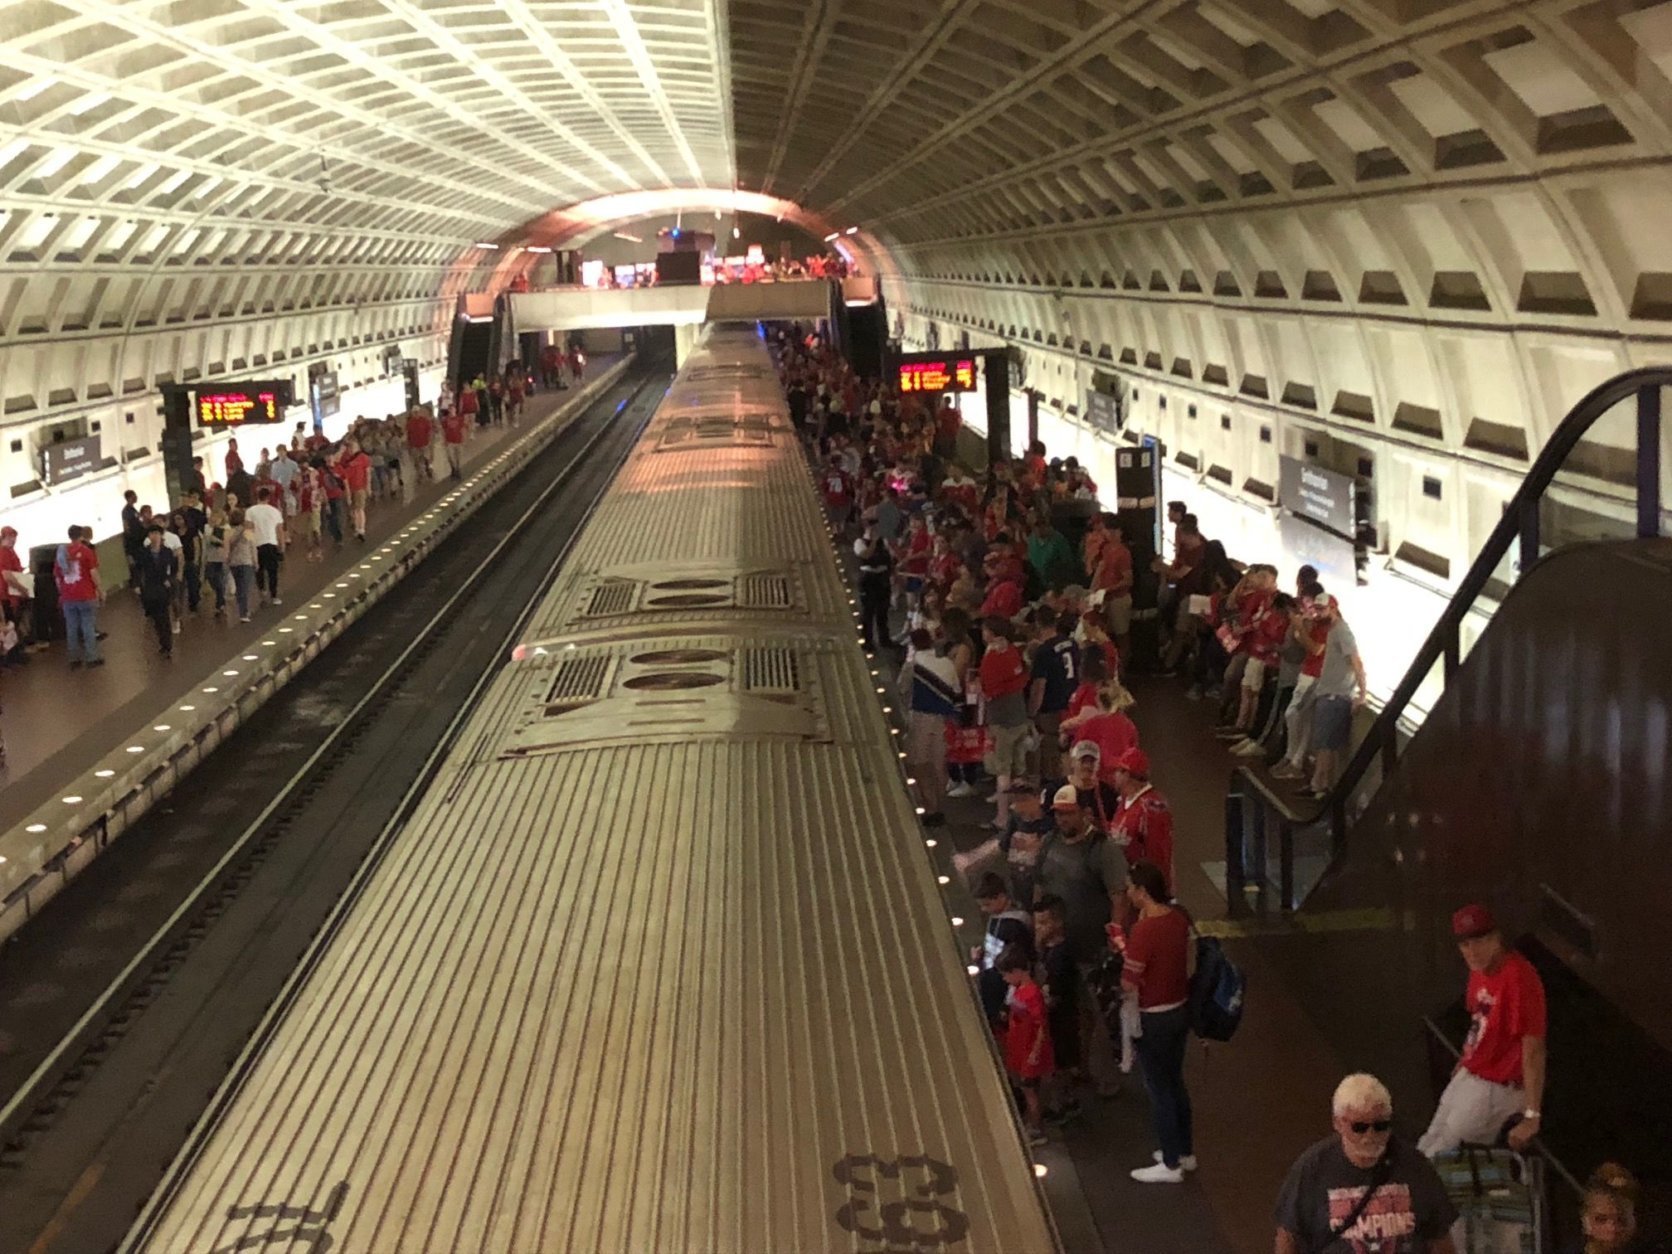 Platforms at the Smithsonian Metro station are crowded but manageable on Tuesday, June 12, 2018. (WTOP/Dave Dildine)